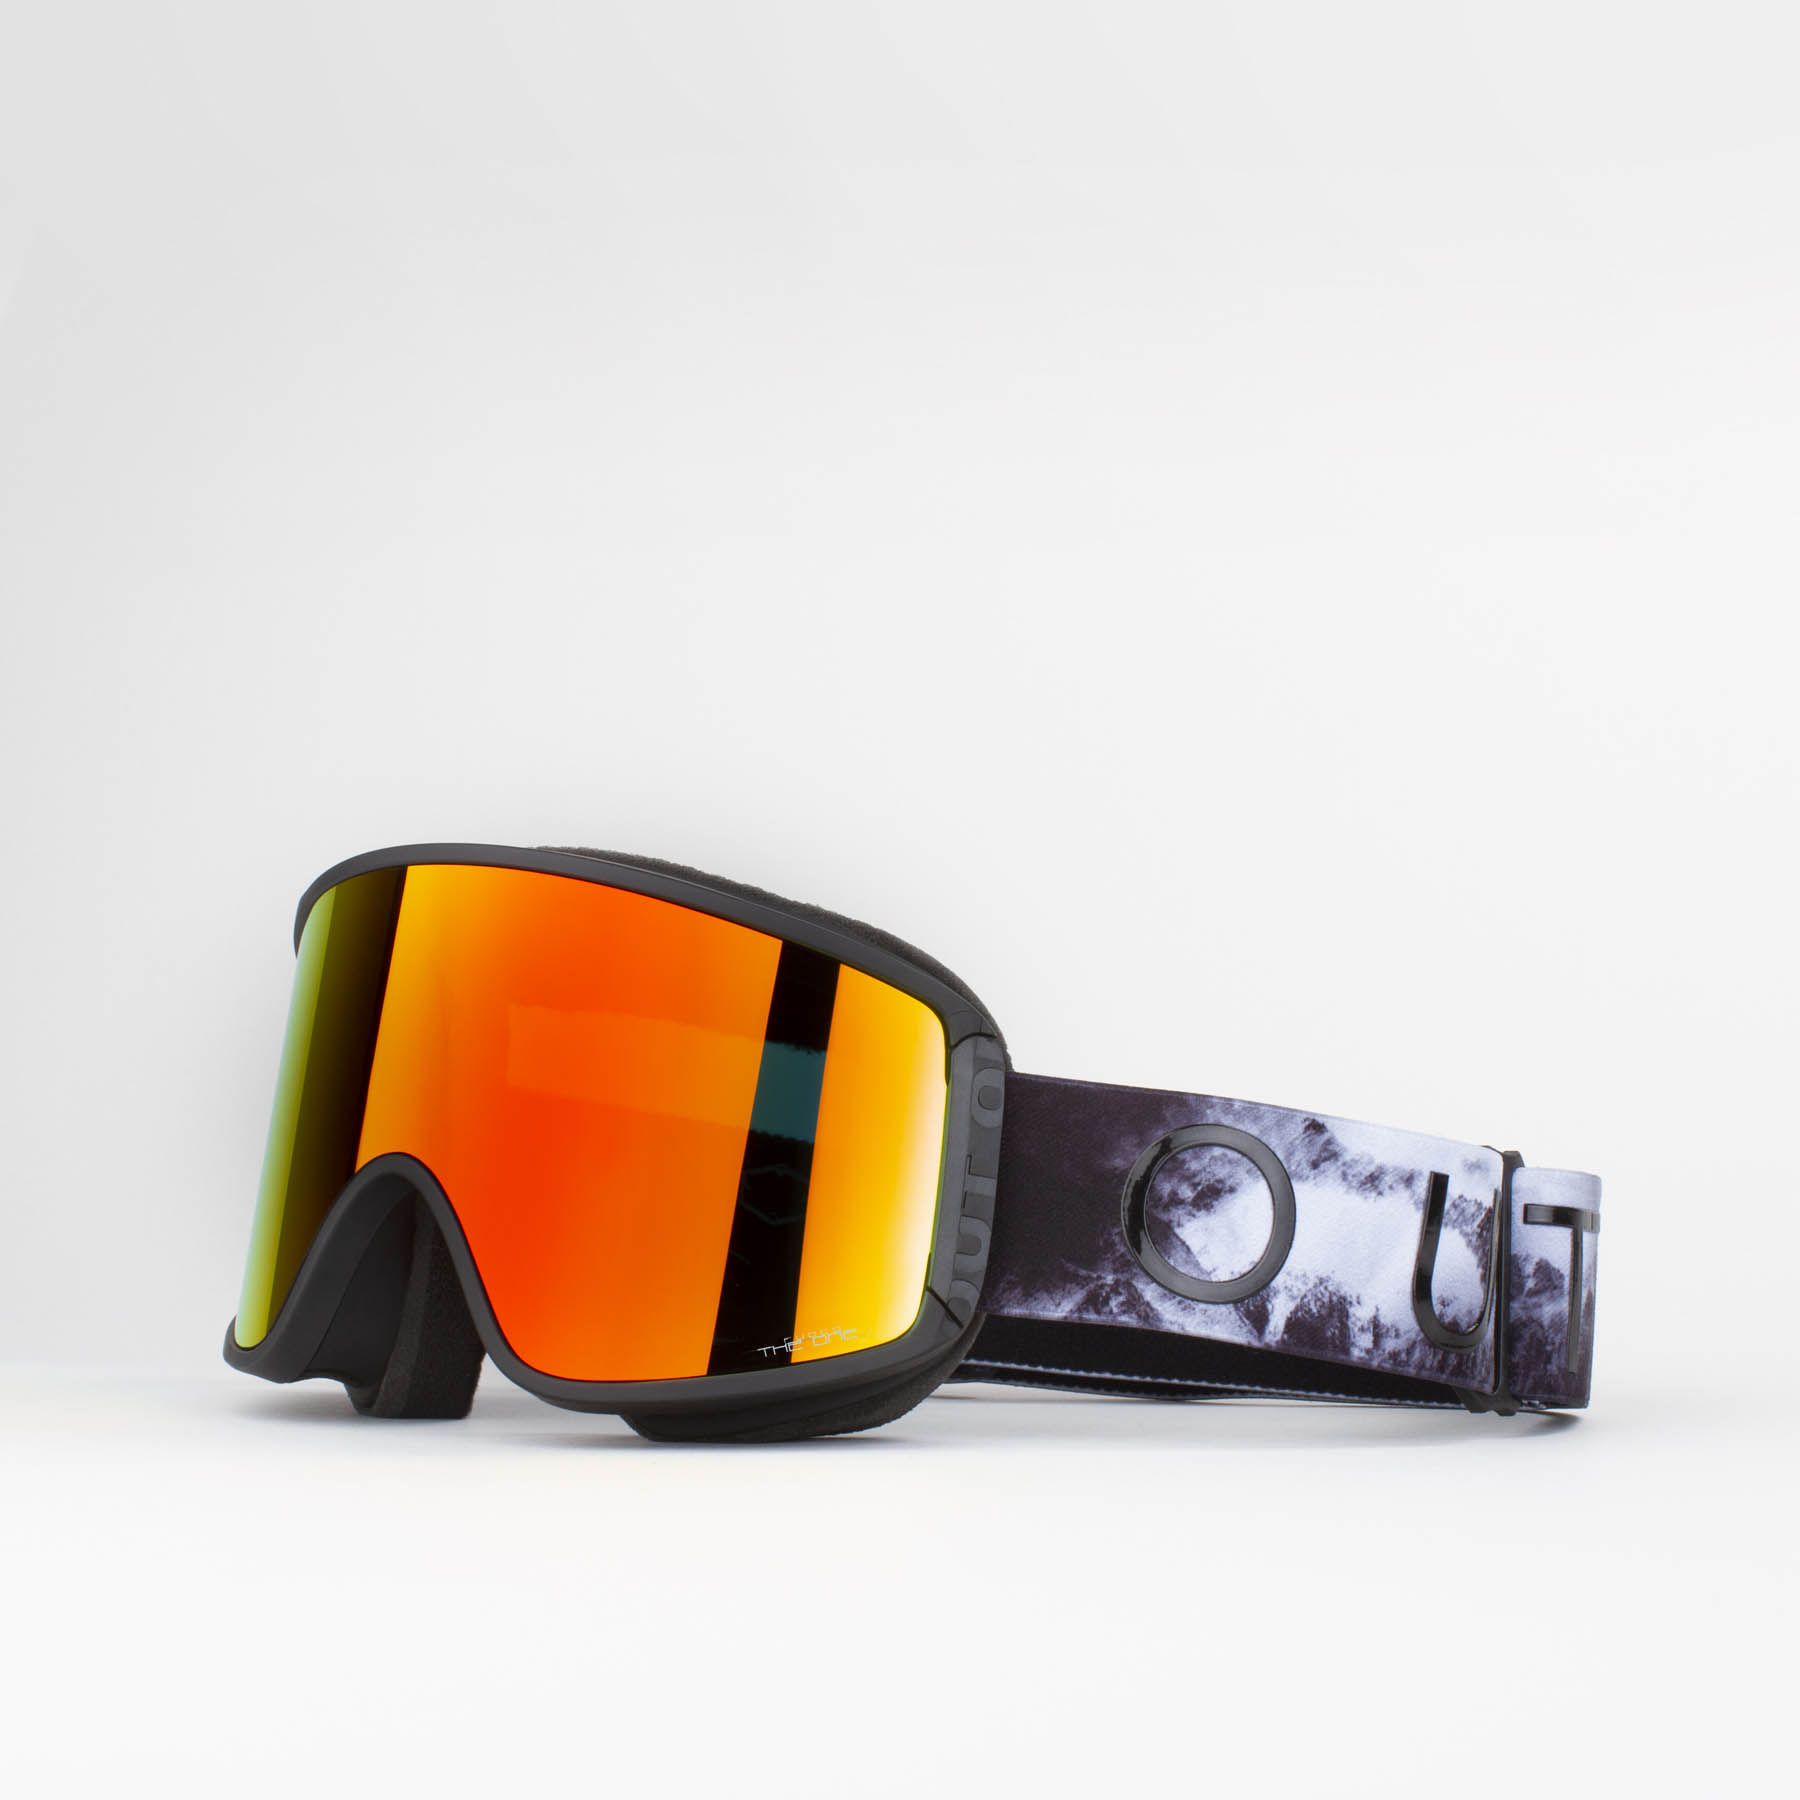 Shift Tempesta The One Fuoco goggle